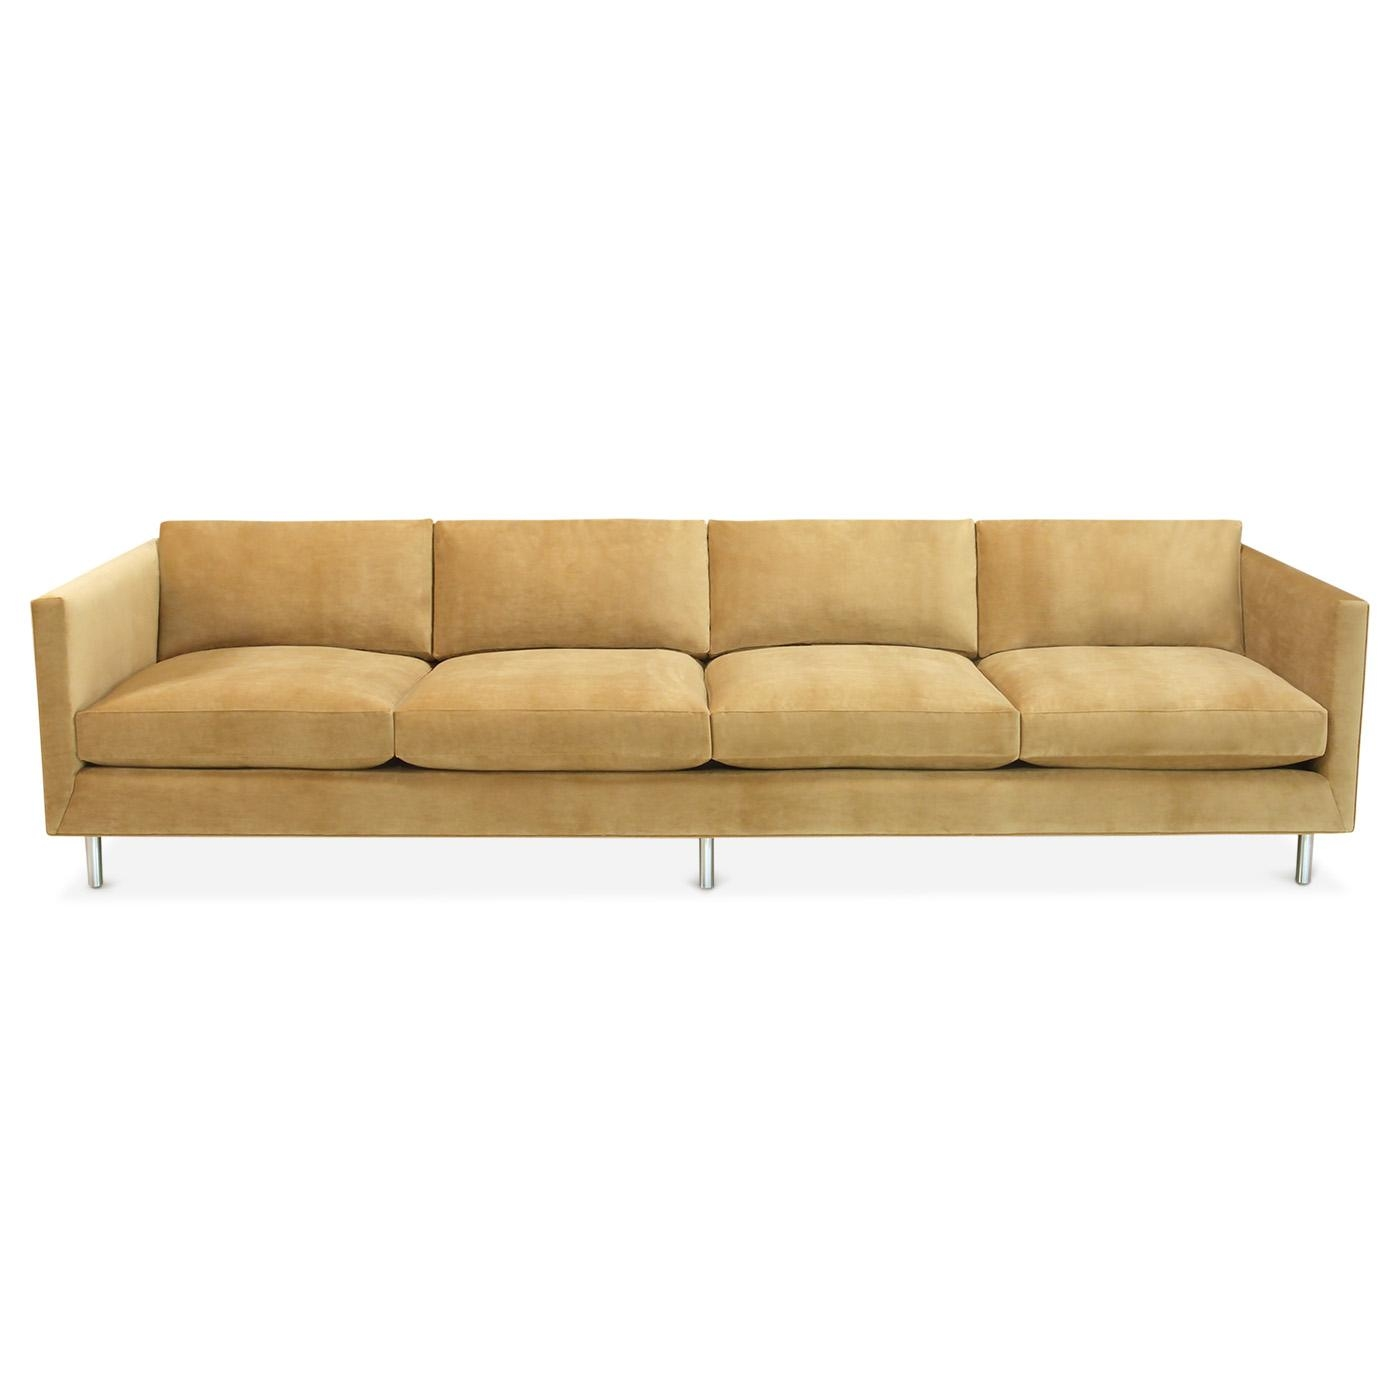 Topanga Four Seater Sofa | Modern Furniture | Jonathan Adler Within Four Seater Sofas (View 13 of 20)